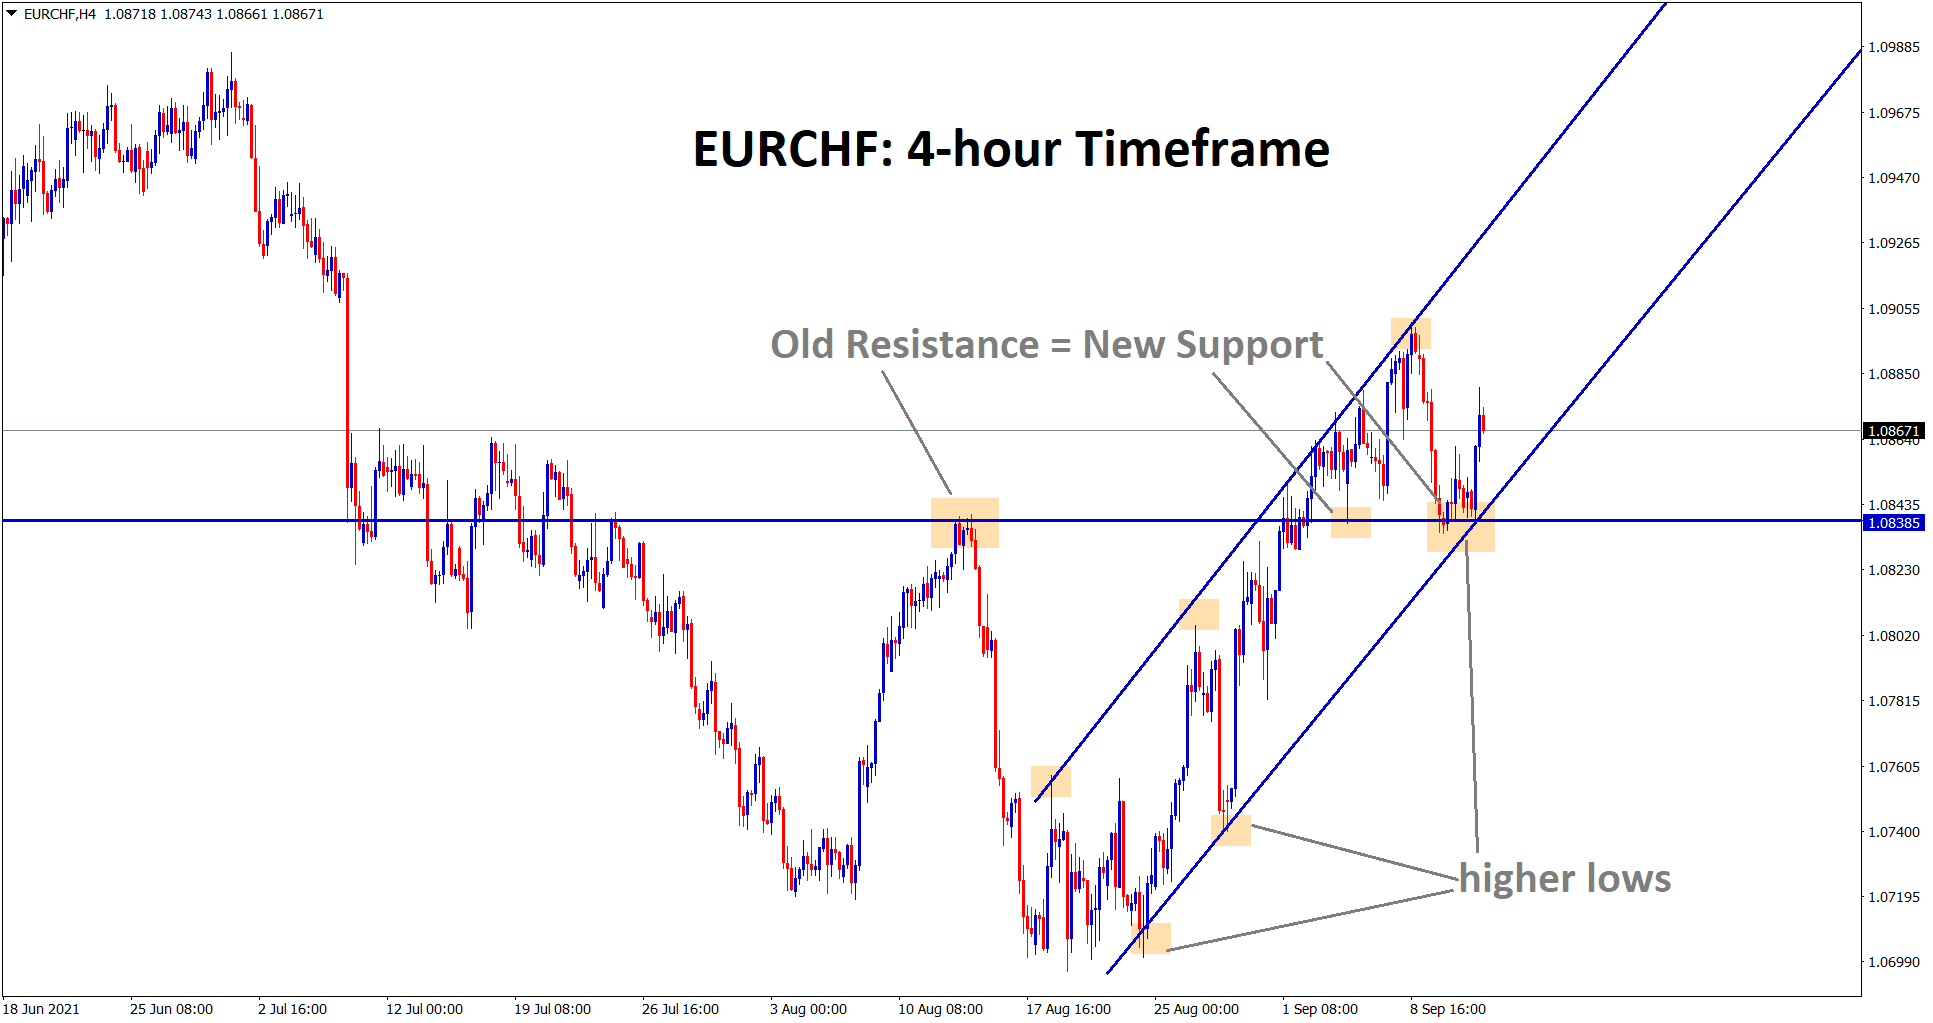 EURCHF is rebounding from the support area and the higher low of the uptrend line